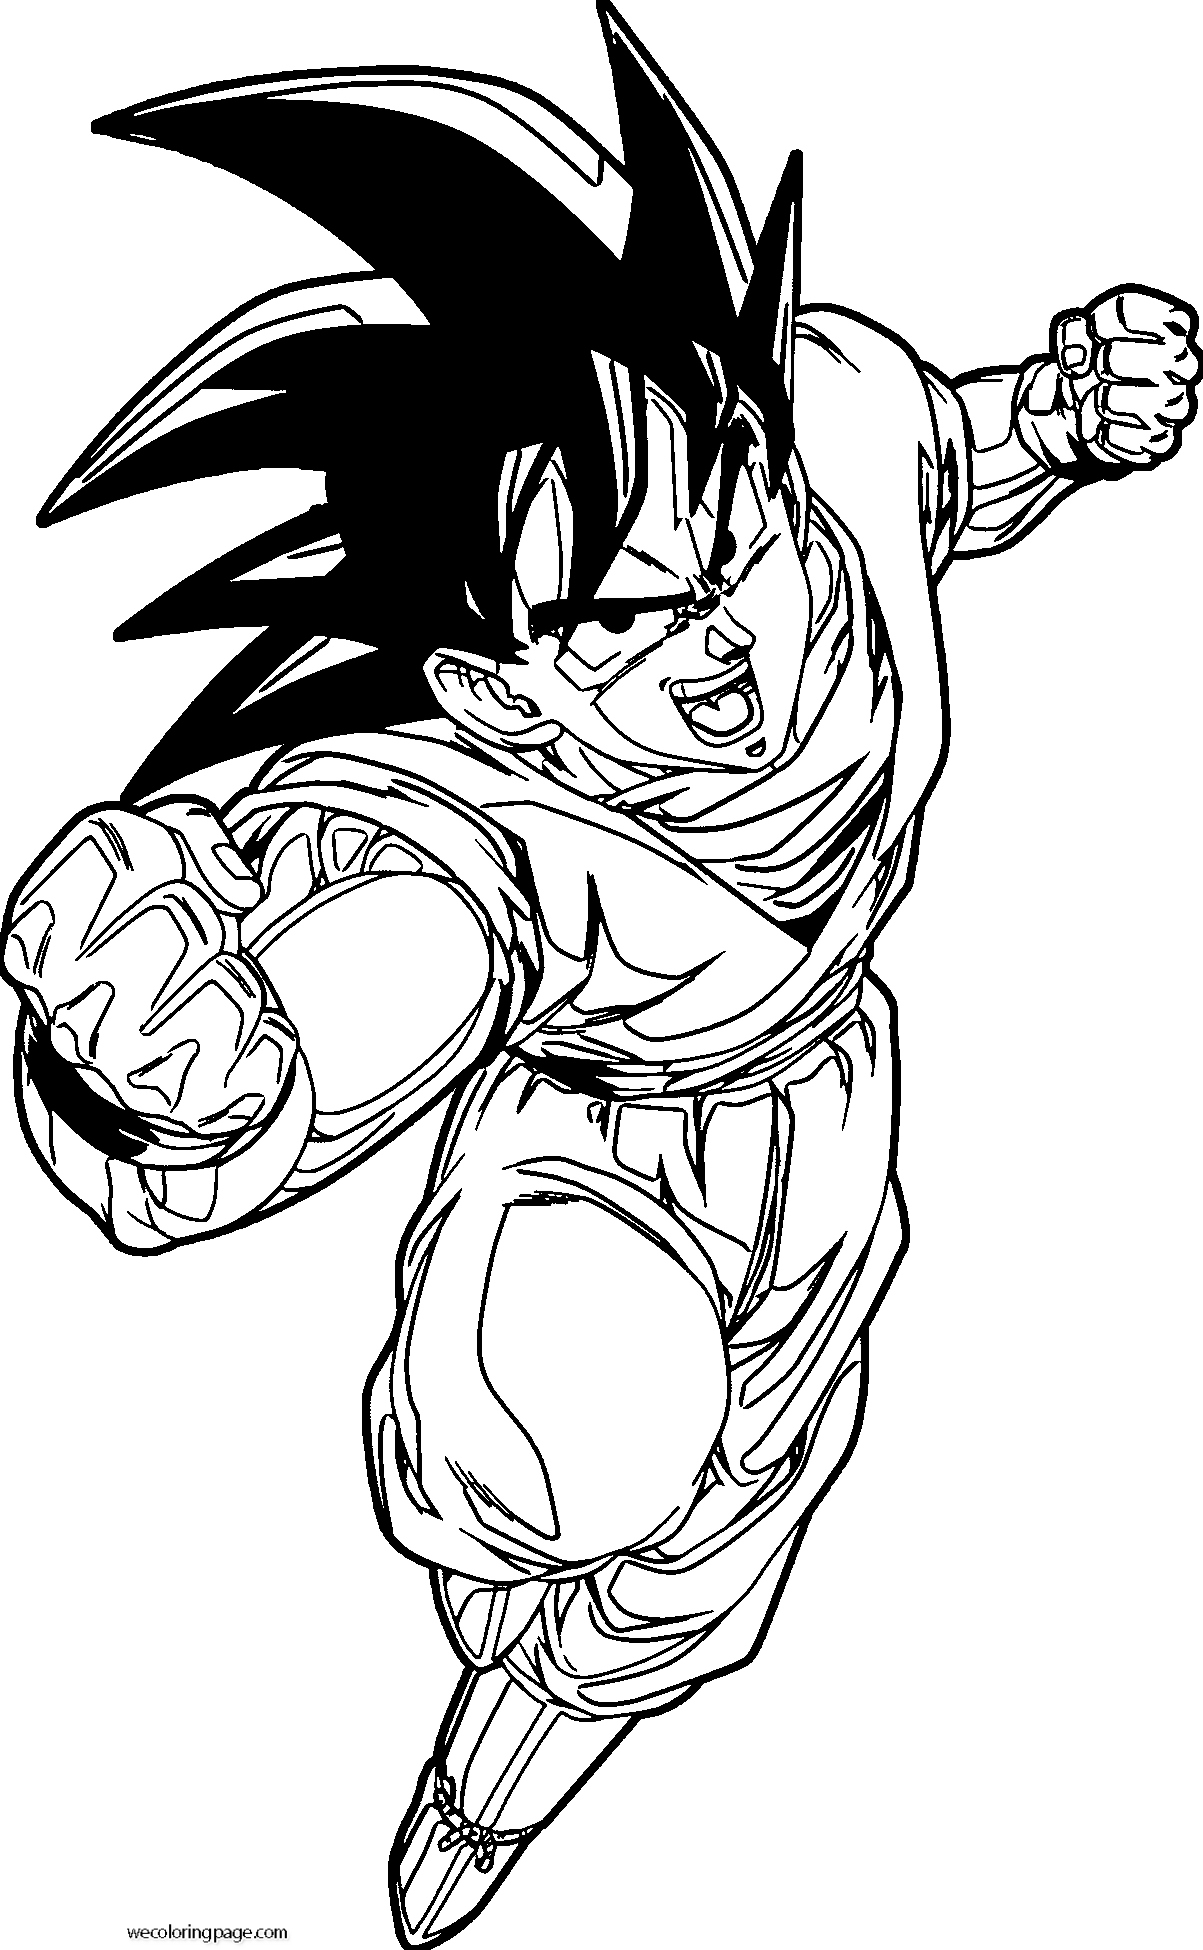 Goku Punch Coloring Page